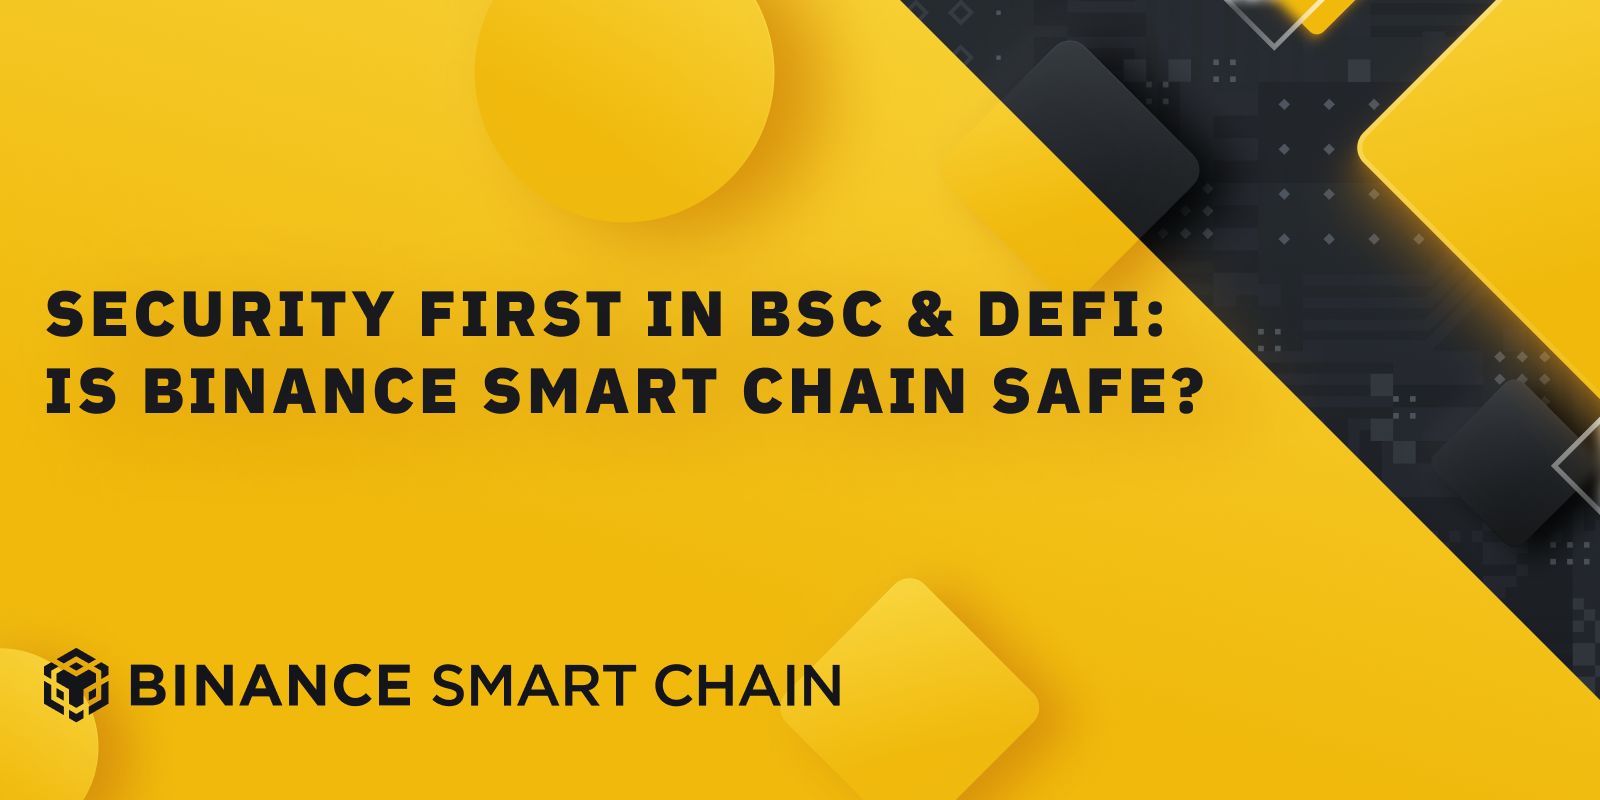 Security First in BSC & DeFi: Is Binance Smart Chain Safe?